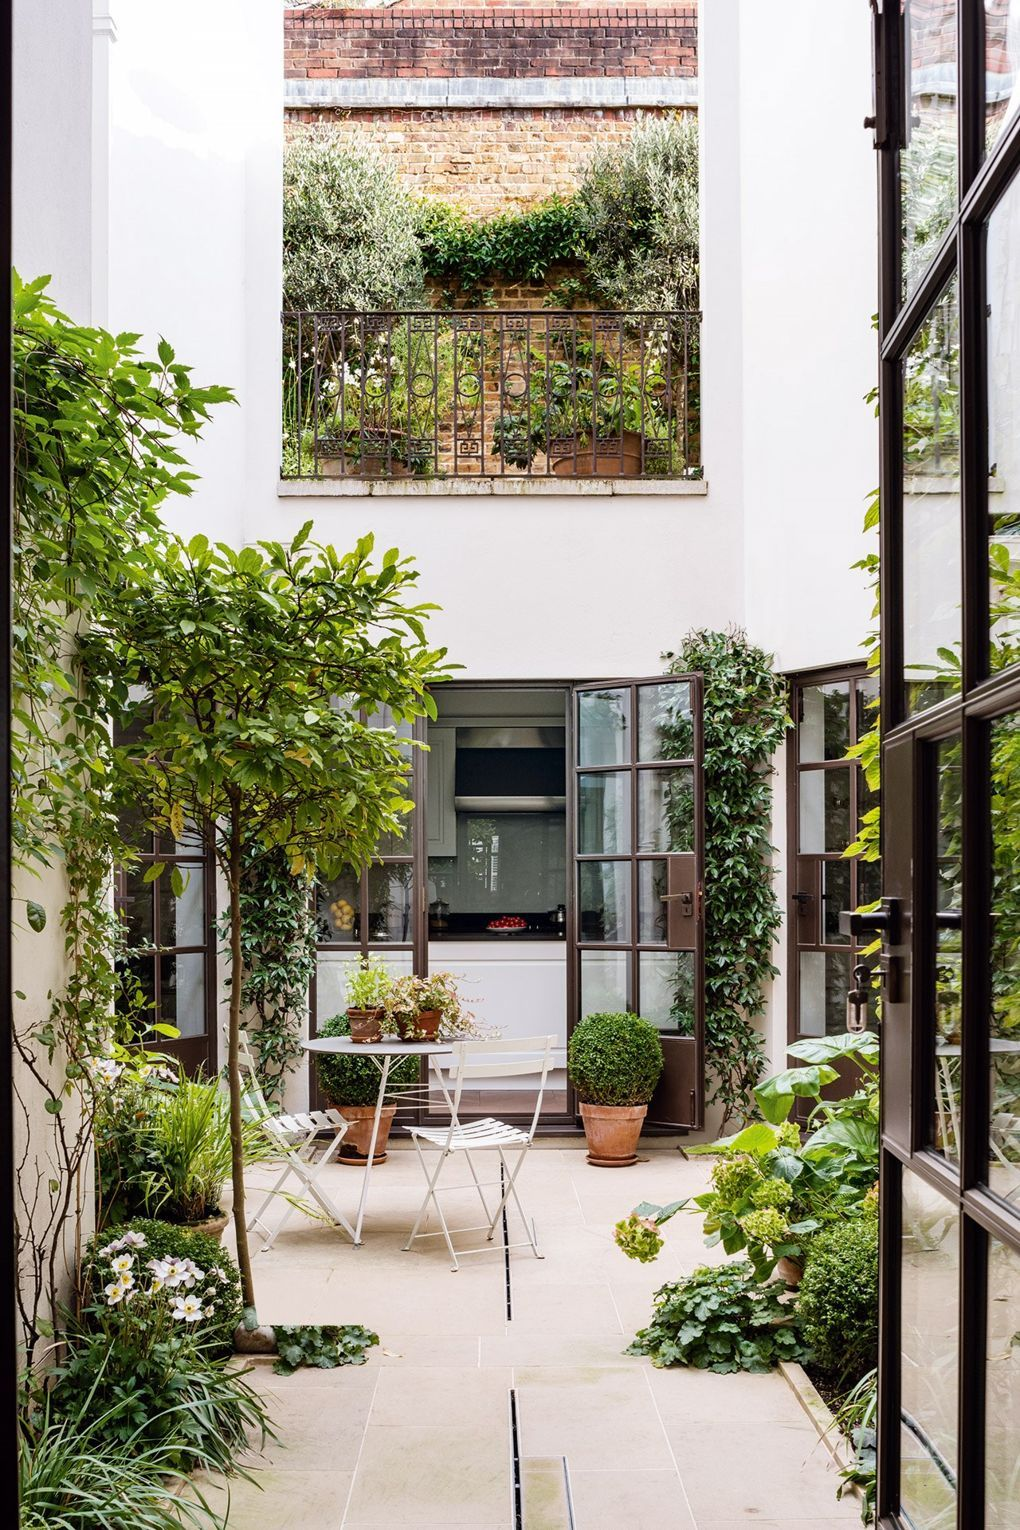 City garden inspiration | Small garden design, Garden ...